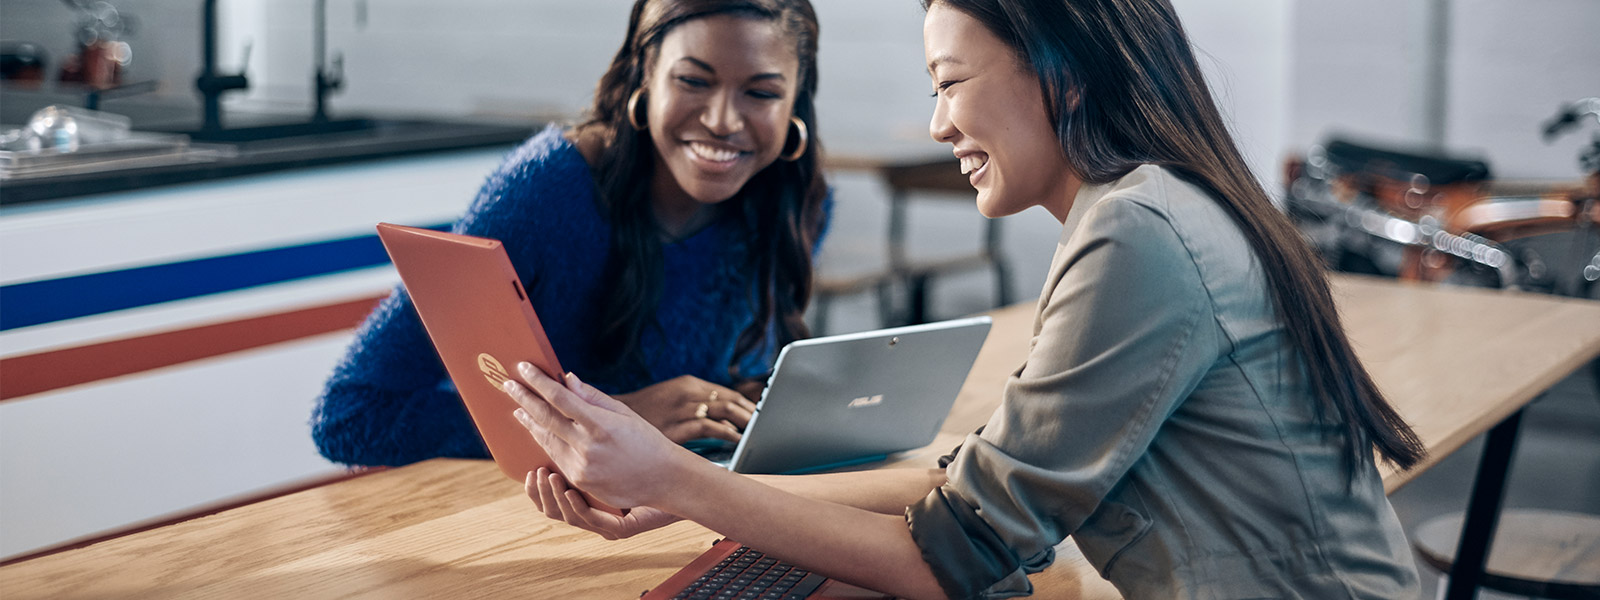 Two women seated at a table, looking at a tablet screen being help up between them by the other woman